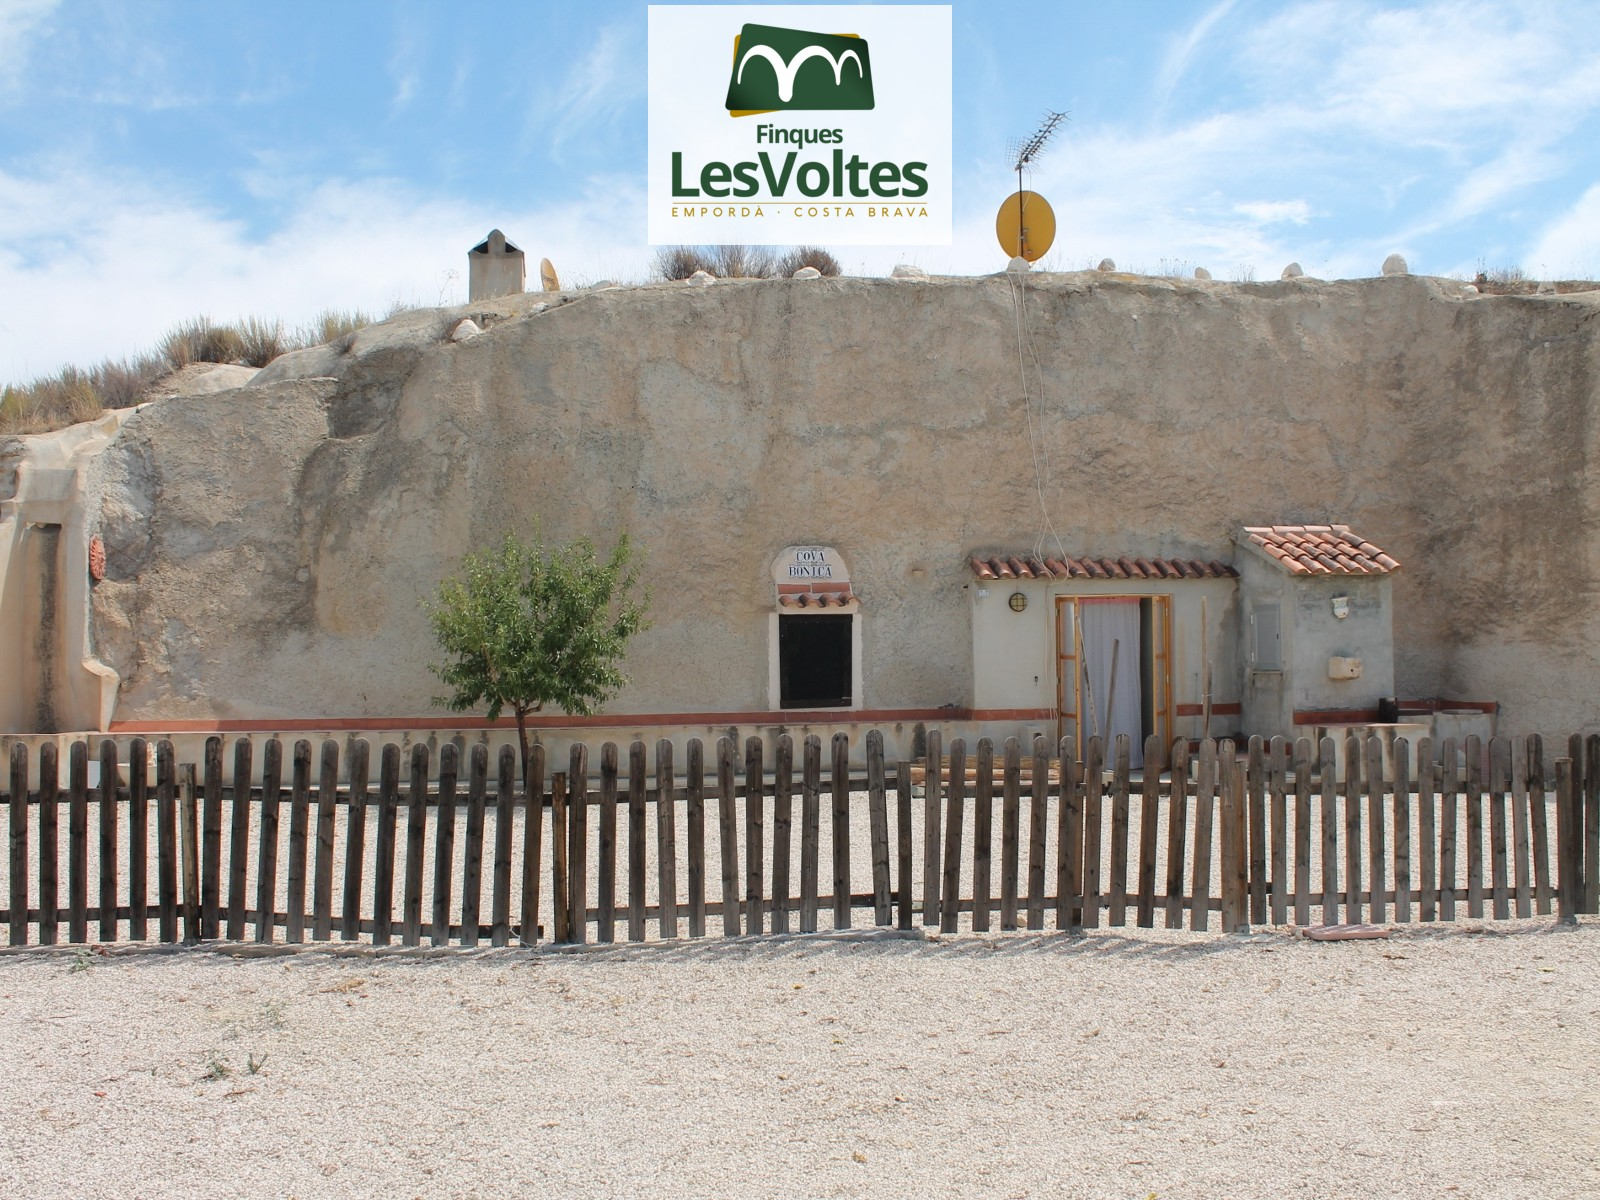 HOUSE-CAVE OF 80 M2 WITH TWO BEDROOMS AND 19,000 M2 OF LAND FOR SALE IN ABANILLA (MURCIA).